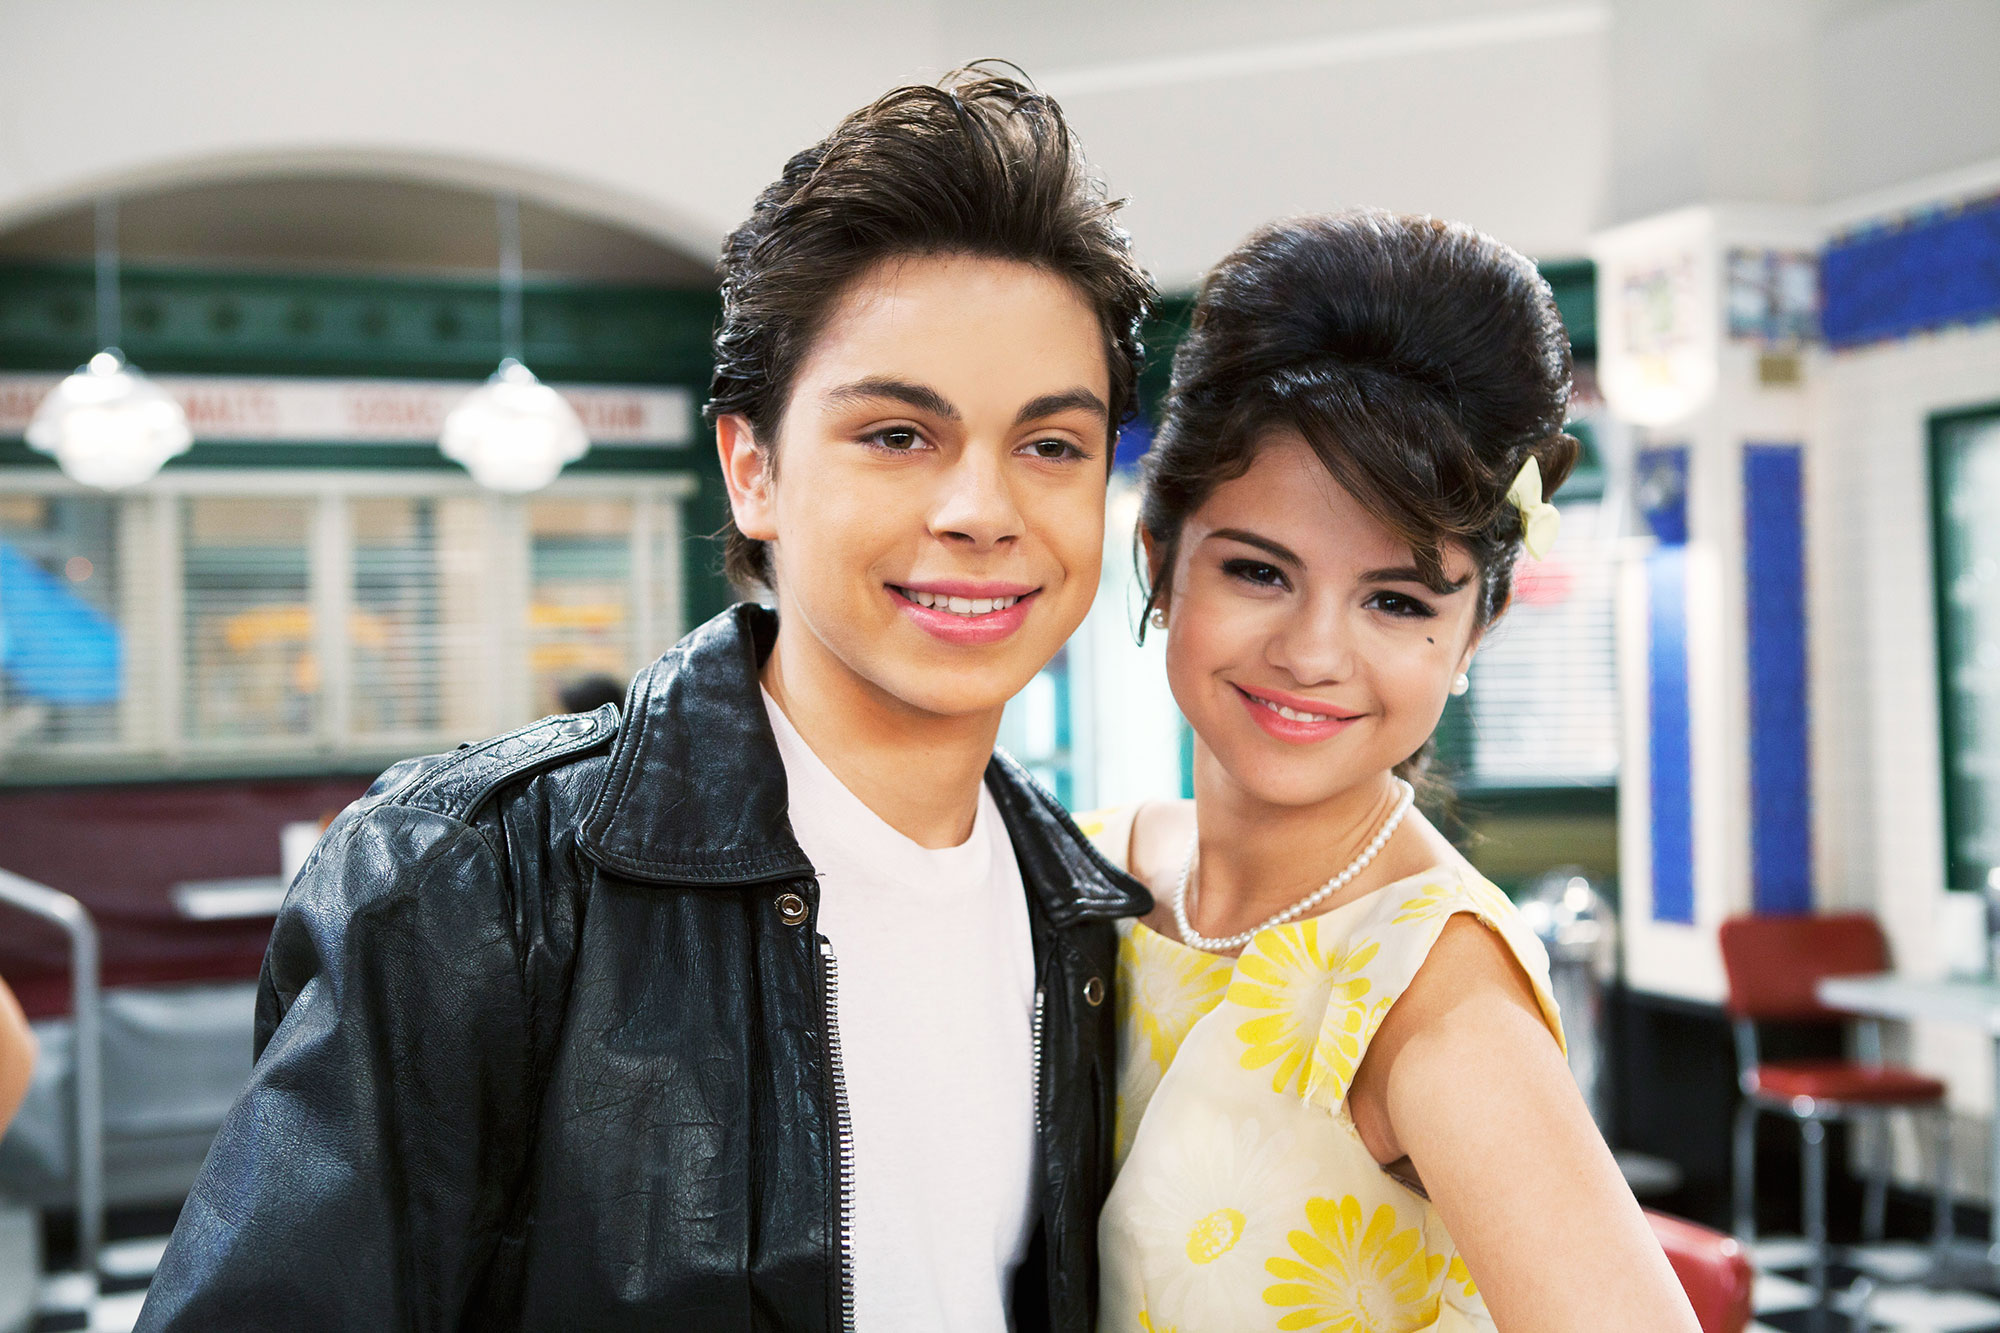 "'Wizards of Waverly Place' Alum Jake T. Austin Wishes 'Sister' Selena Gomez Well After Mental Health Treatment - WIZARDS OF WAVERLY PLACE – ""Rock Around the Clock"" Jake T. Austin and Selena Gomez"